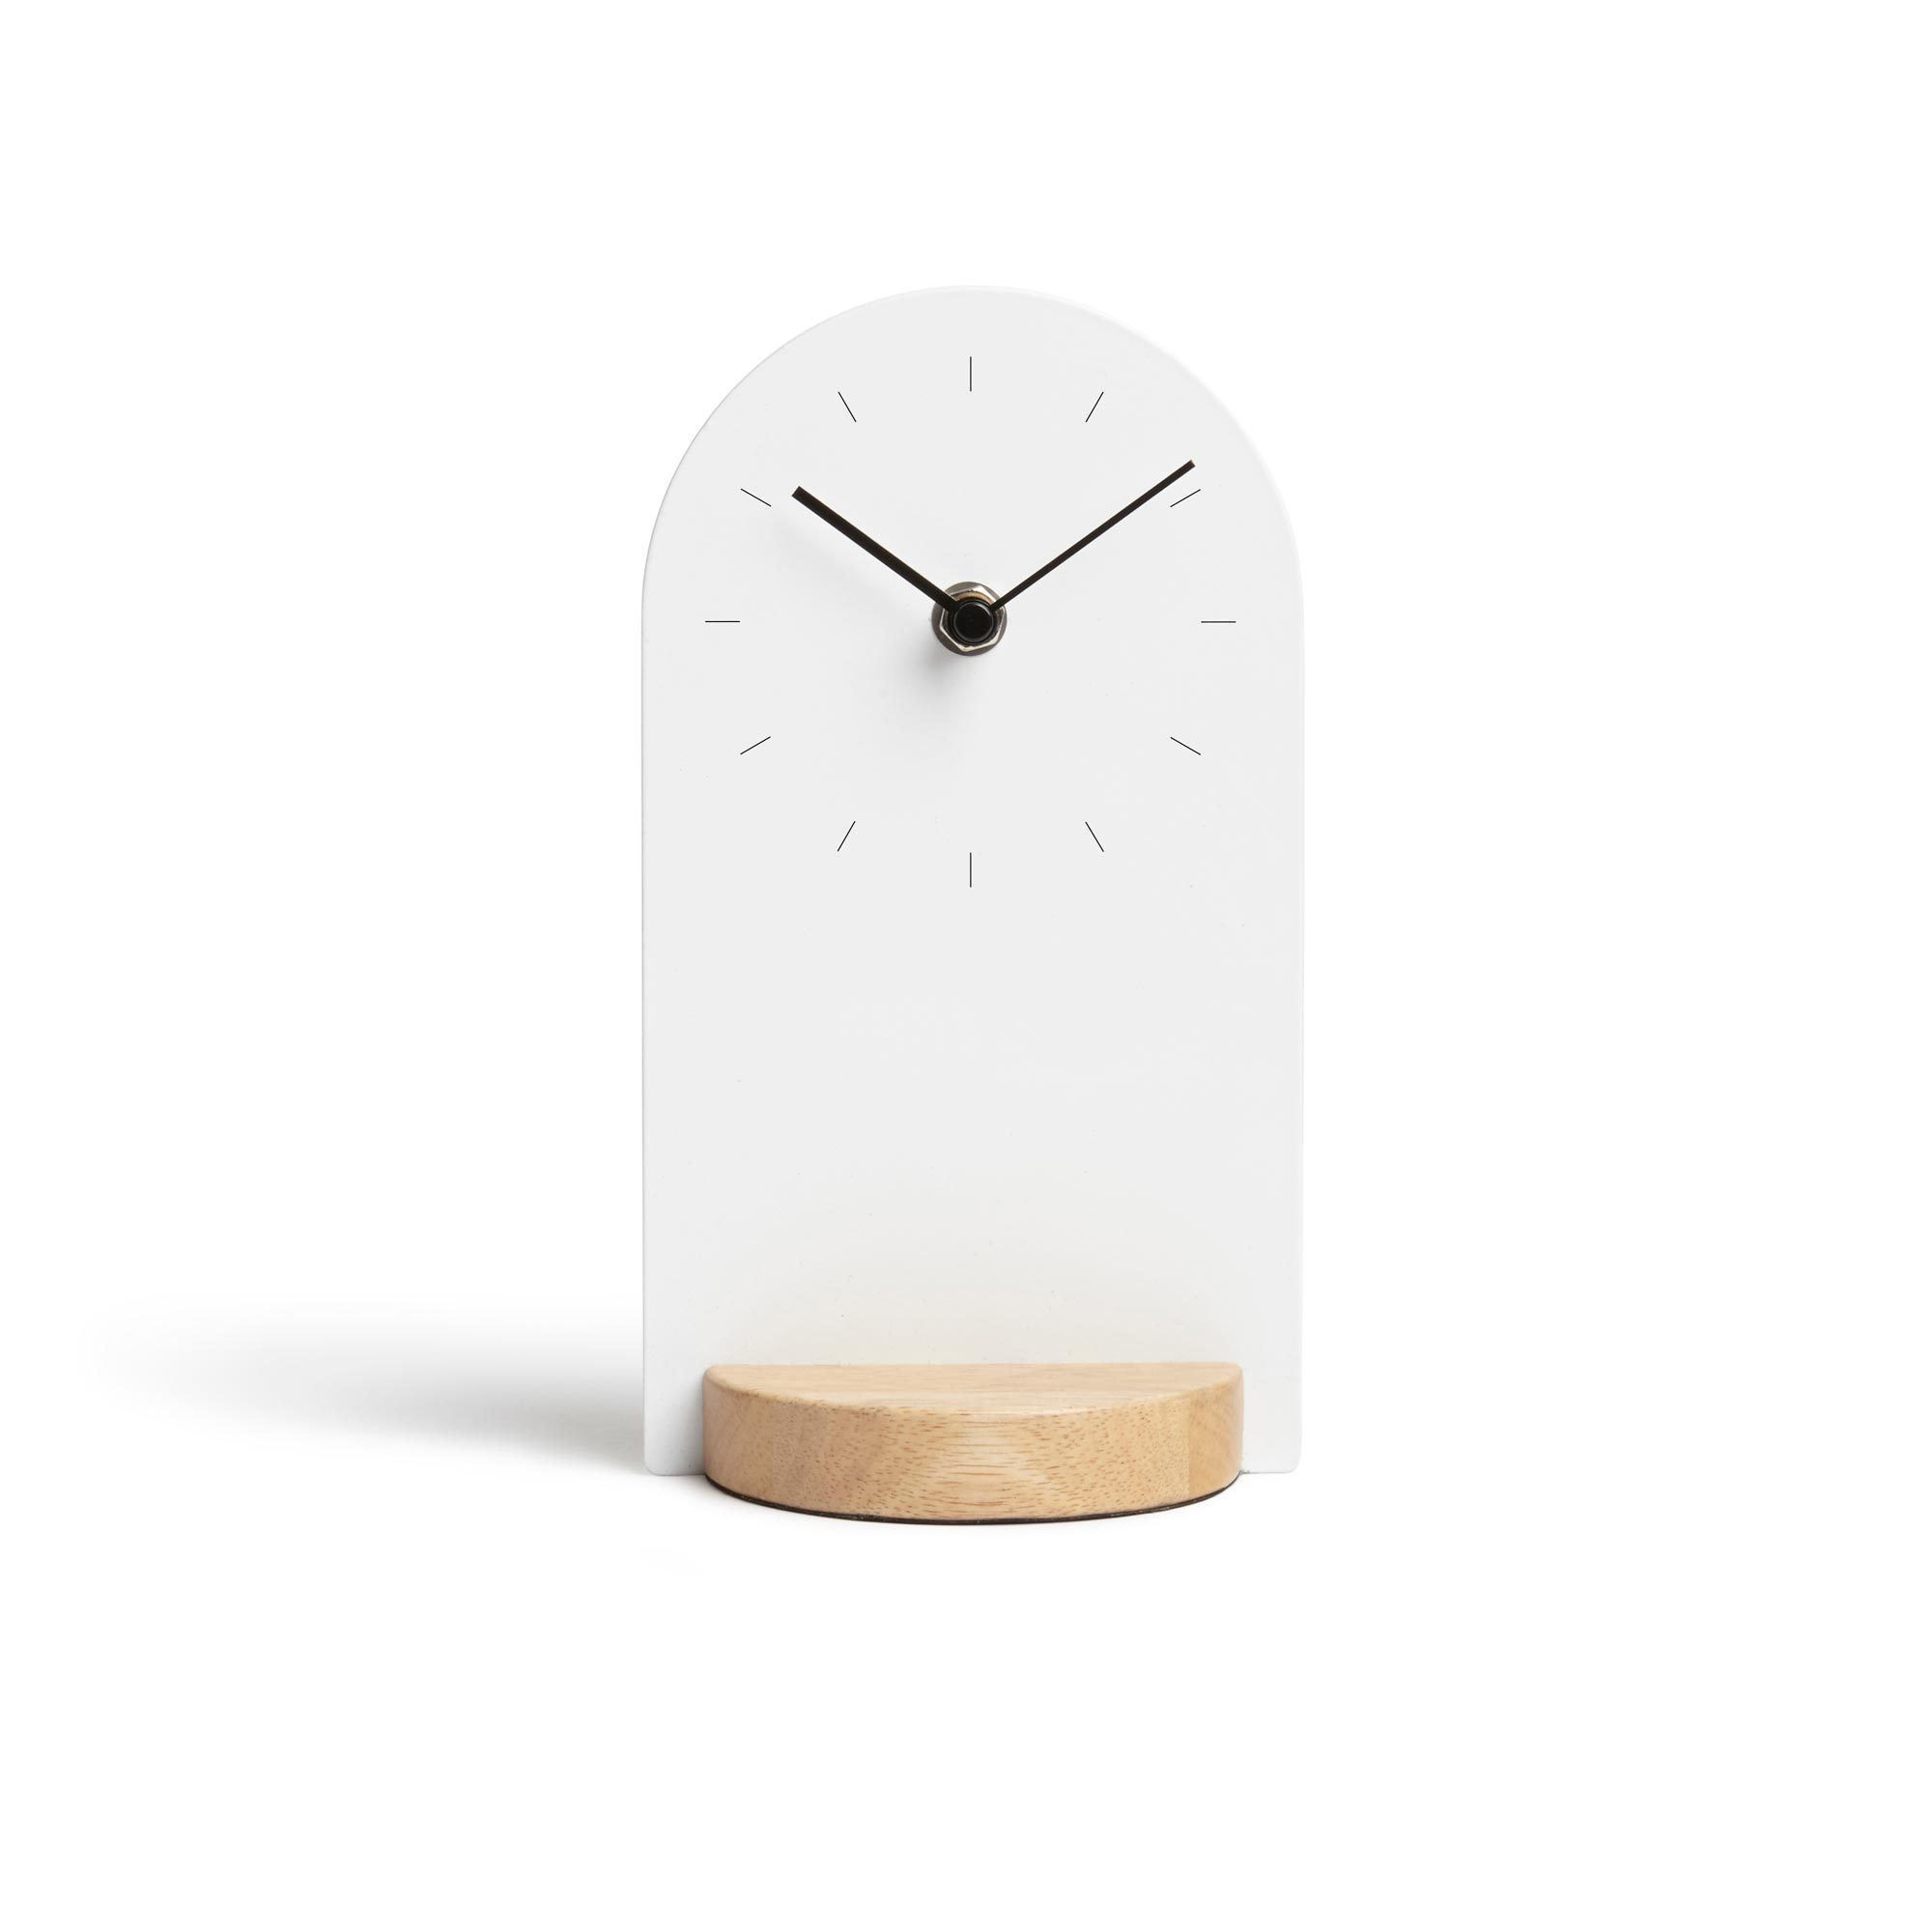 An Architectural Desk Clock In Wood And Metal Finishes Clock Features Mixed Materials Quartz Clock Movement Dimensions 4 1 4 Desk Clock Tabletop Clocks Wood Metal Desk